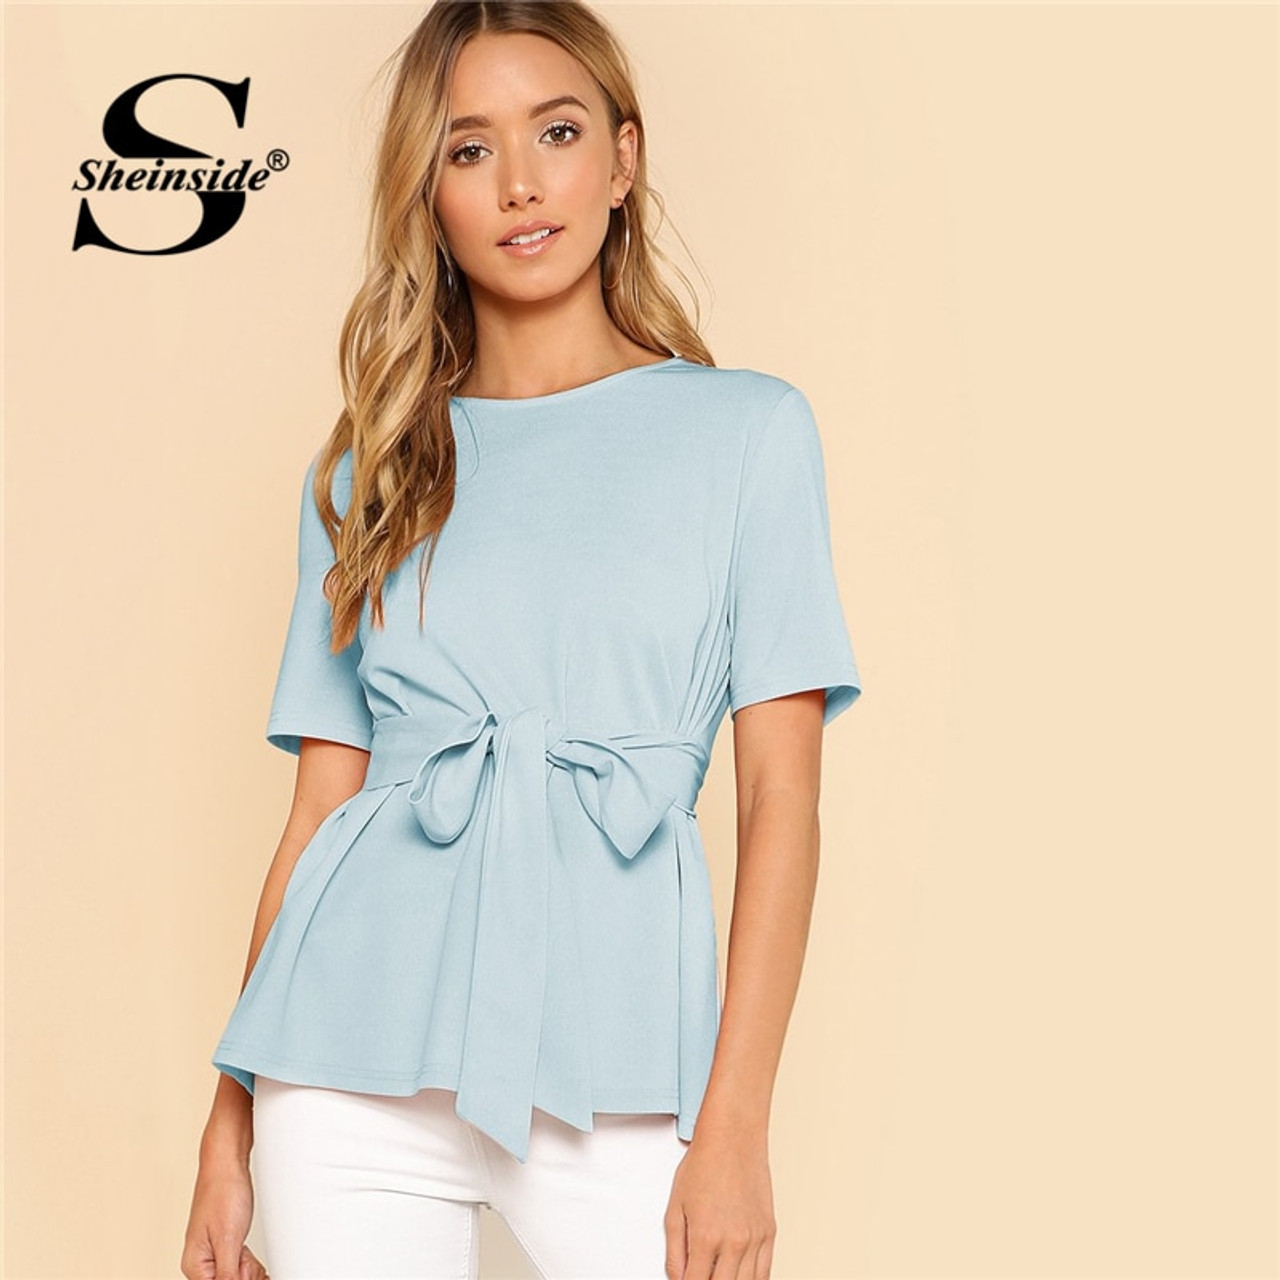 929116aced Sheinside Self Belt Keyhole Back Shirt Short Sleeve Plain Womens Tops and  Blouses Summer Ladies Workwear Elegant Blouse - OnshopDeals.Com